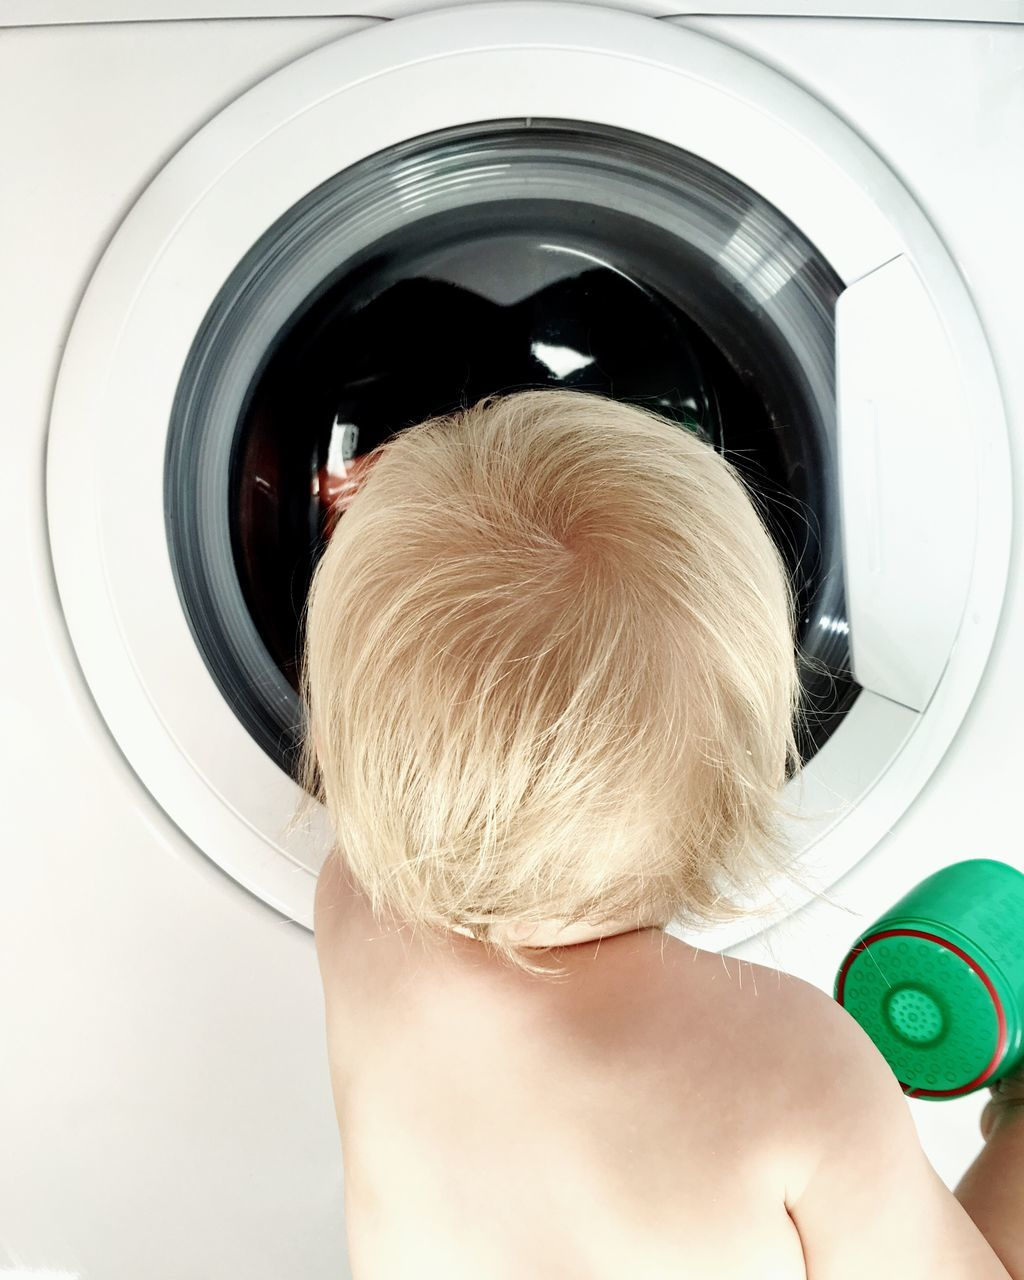 Rear View Of Boy Looking At Washing Machine